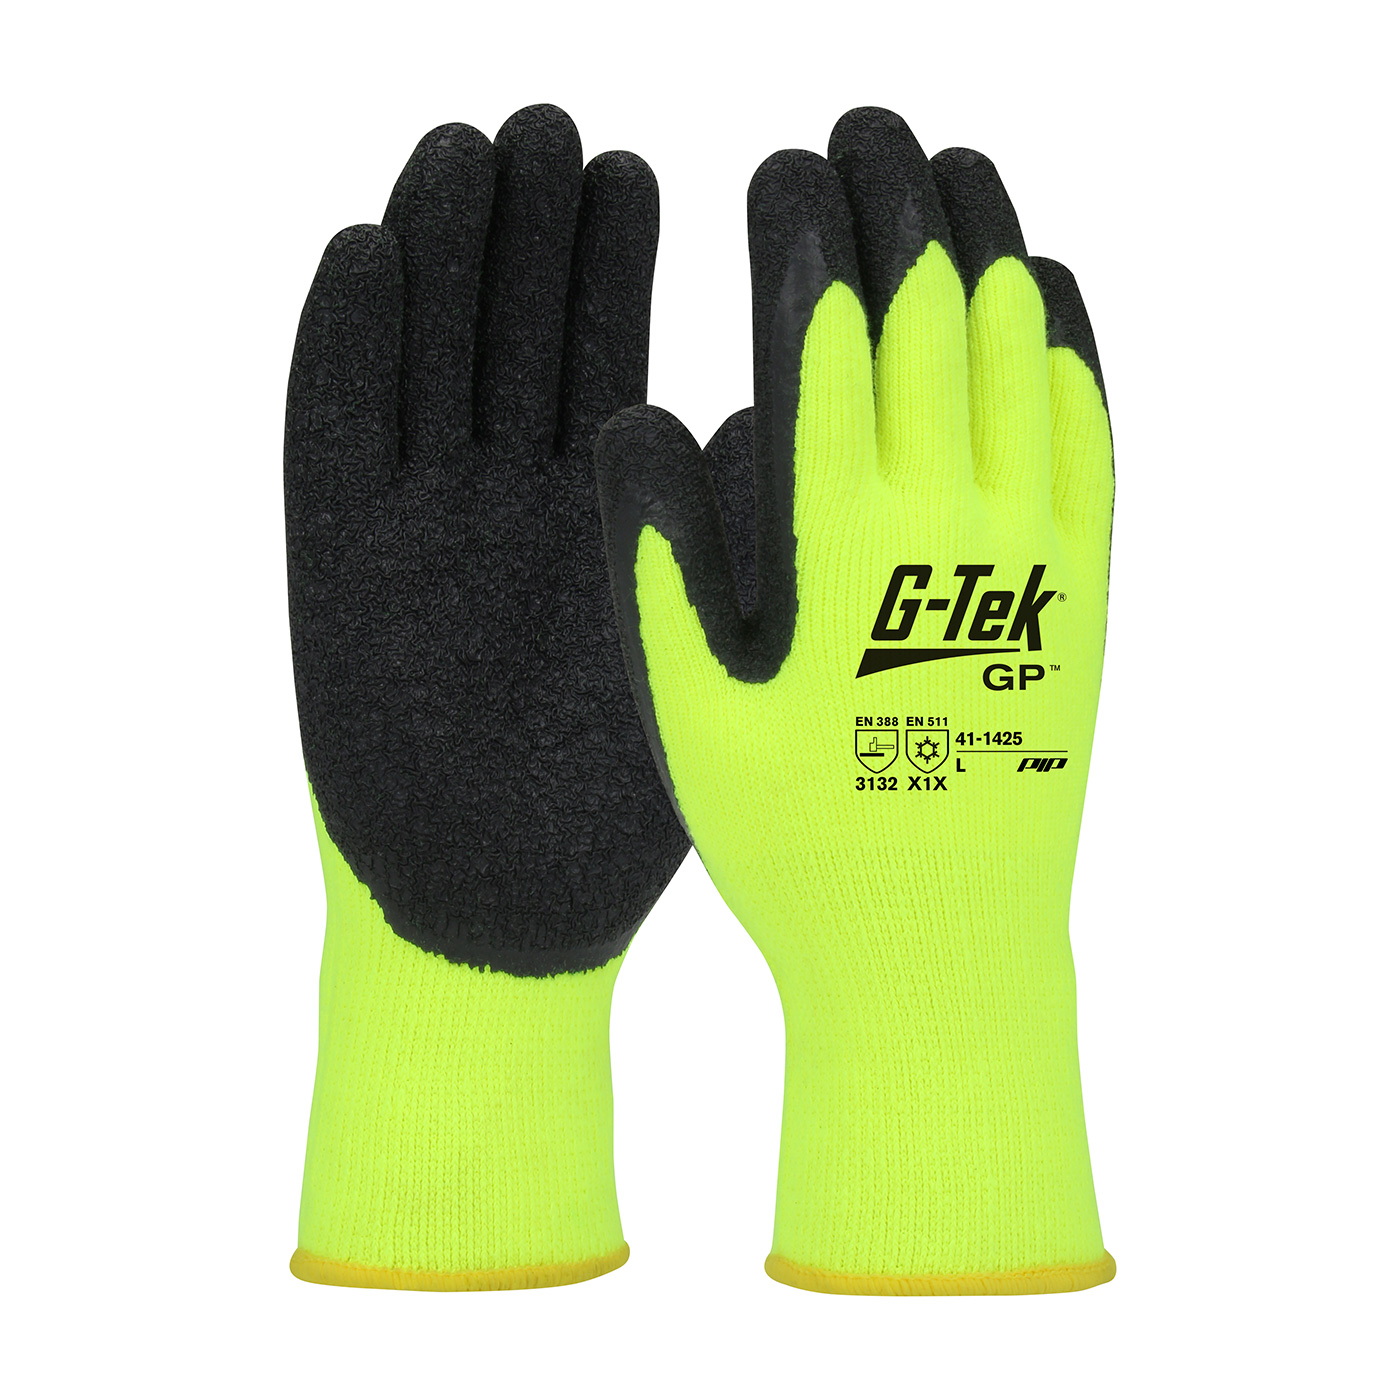 #41-1425 PIP G-Tek® GP™ Hi-Vis Seamless Knit Brushed Acrylic Glove with Latex Coated Crinkle Grip on Palm & Fingers